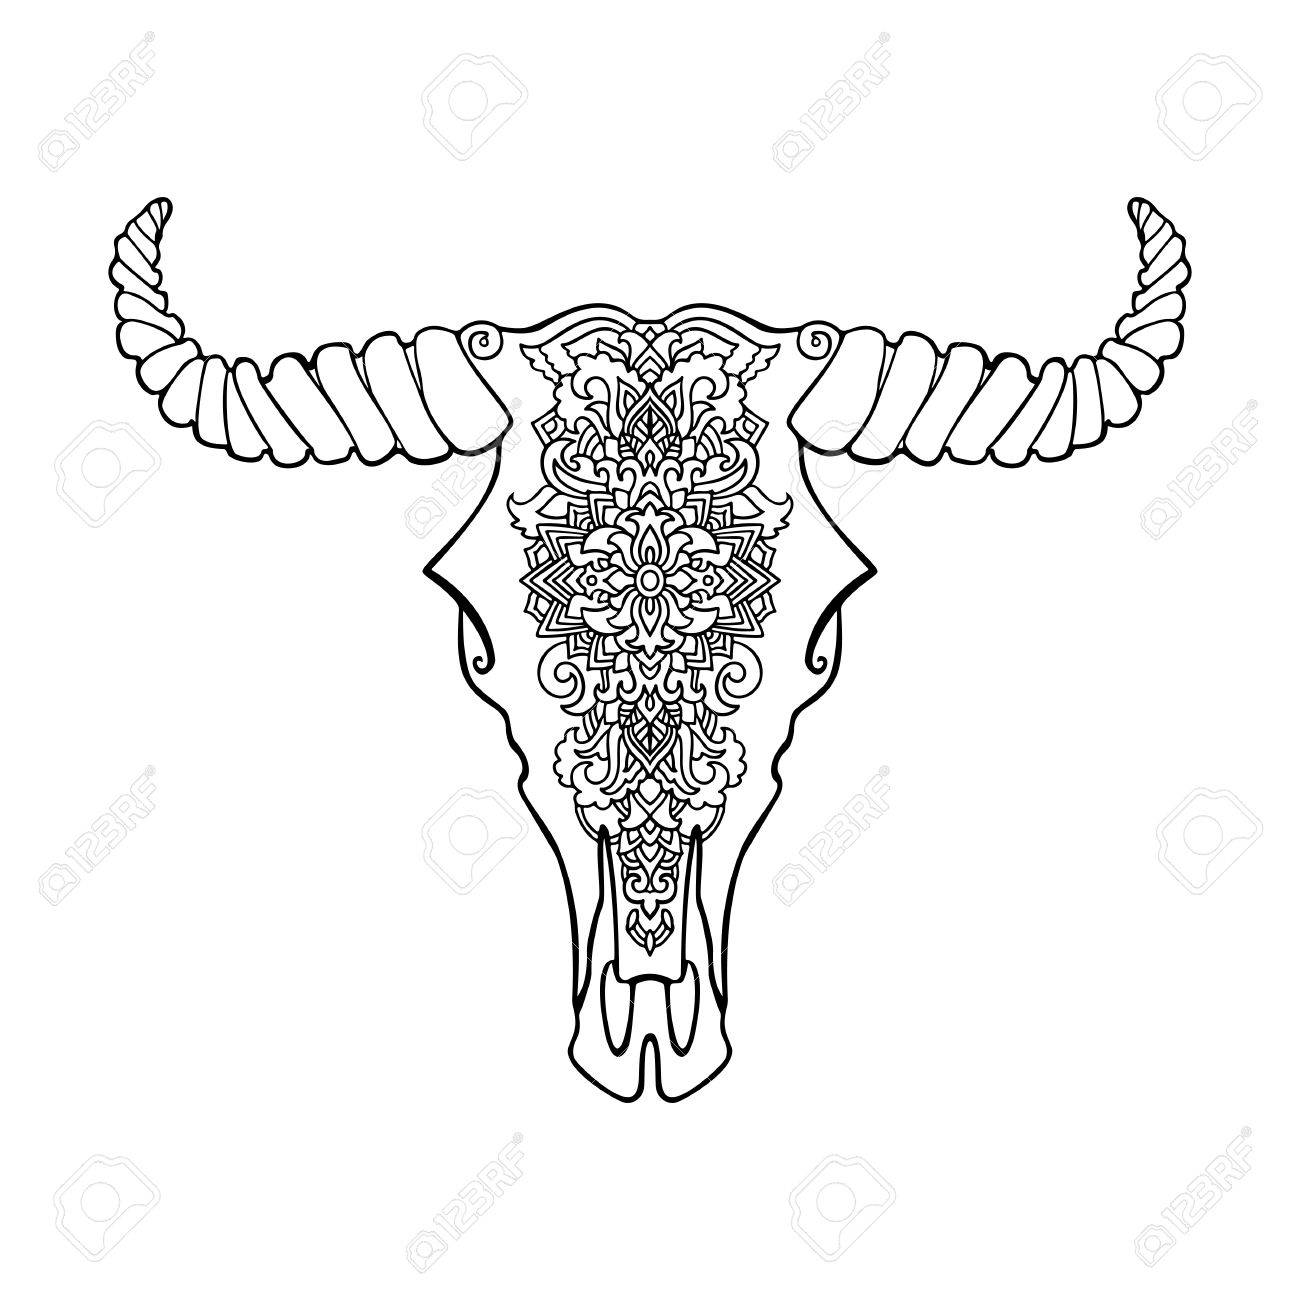 Dead Animal Drawing At Getdrawings Com Free For Personal Use Dead